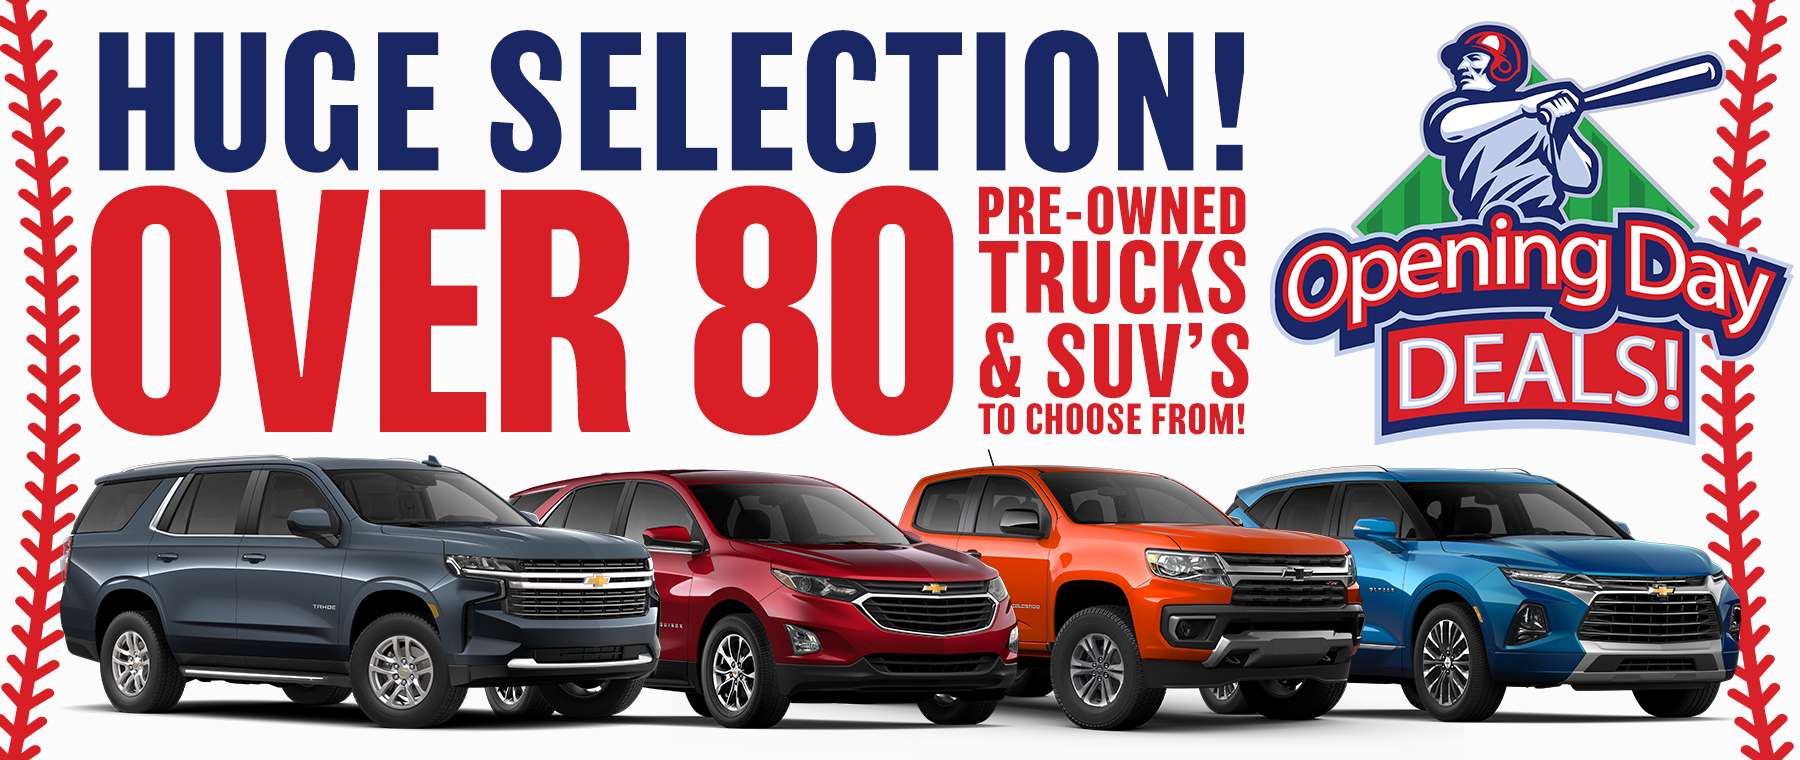 Huge Selection of Pre-Owned